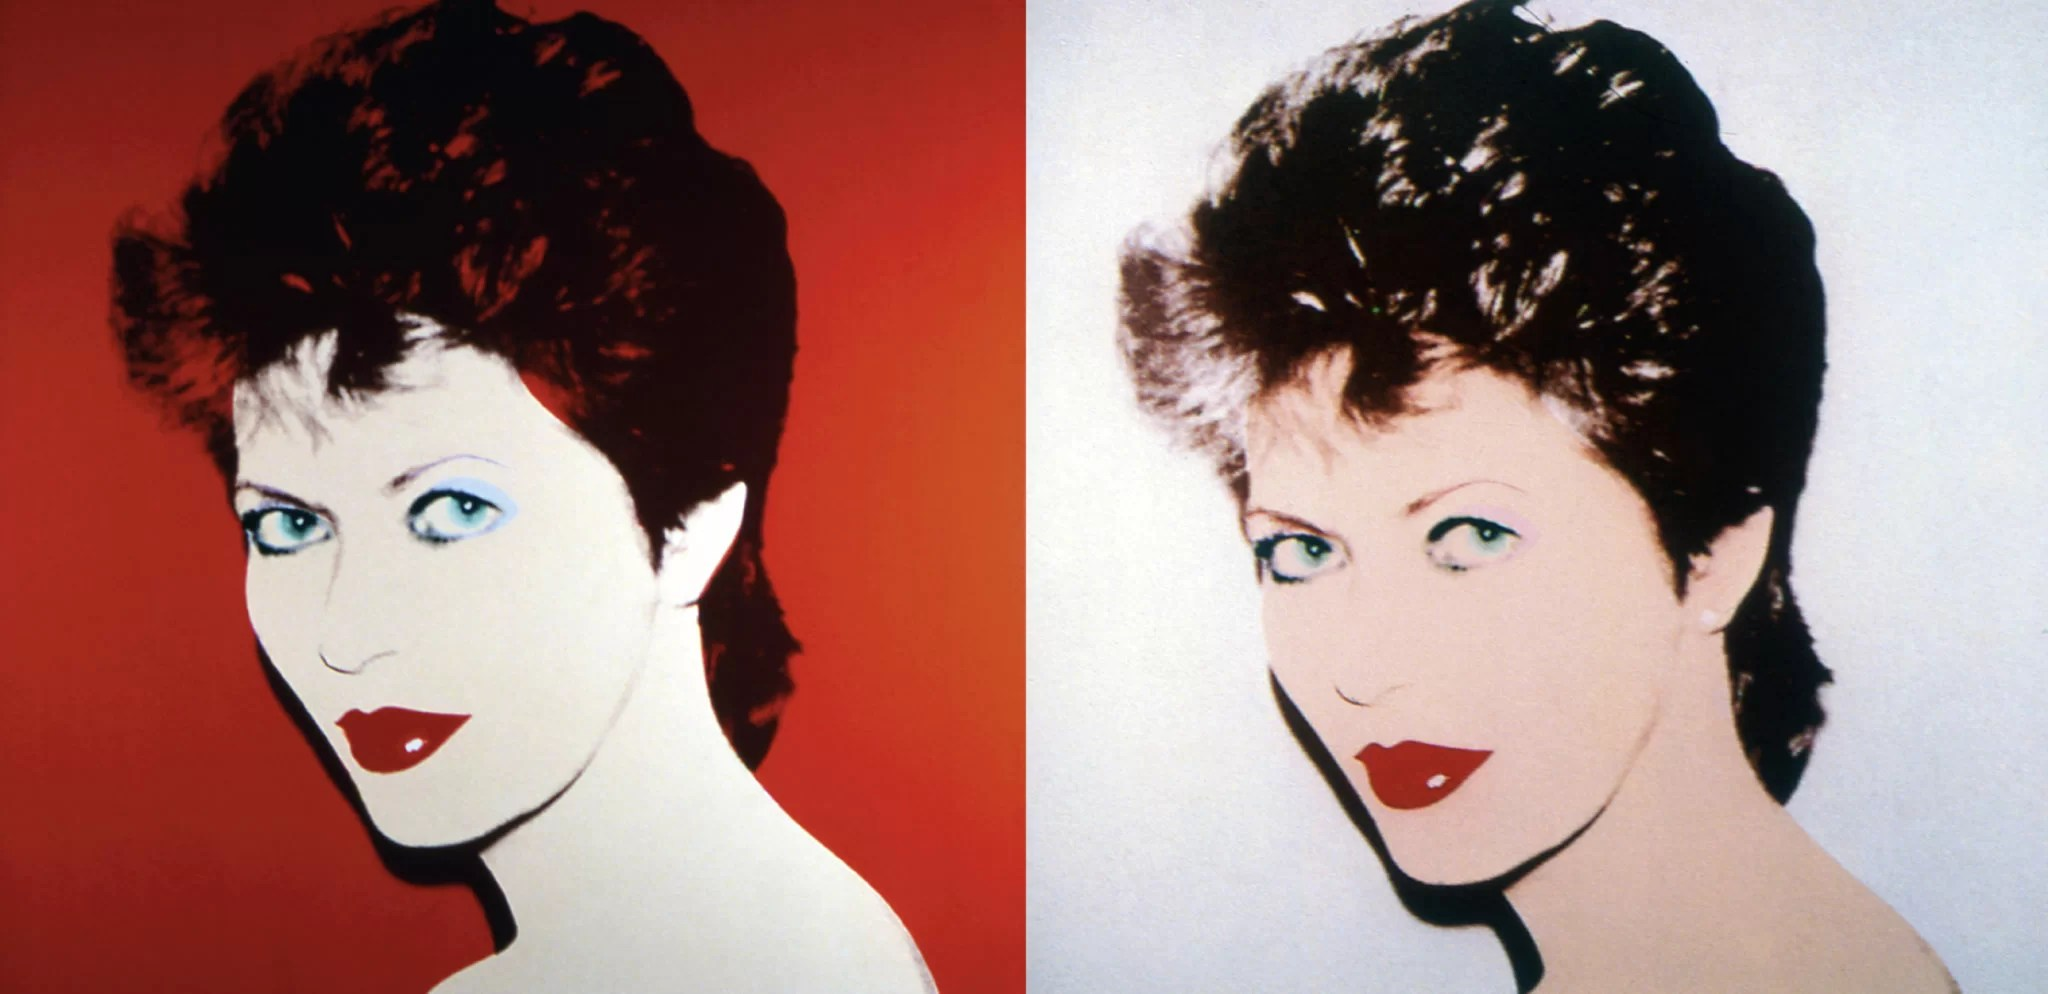 Il Genere Di Pittura Di Andy Dalla Pop Art Ai Graffiti Warhol Schifano E Toxic In Mostra A